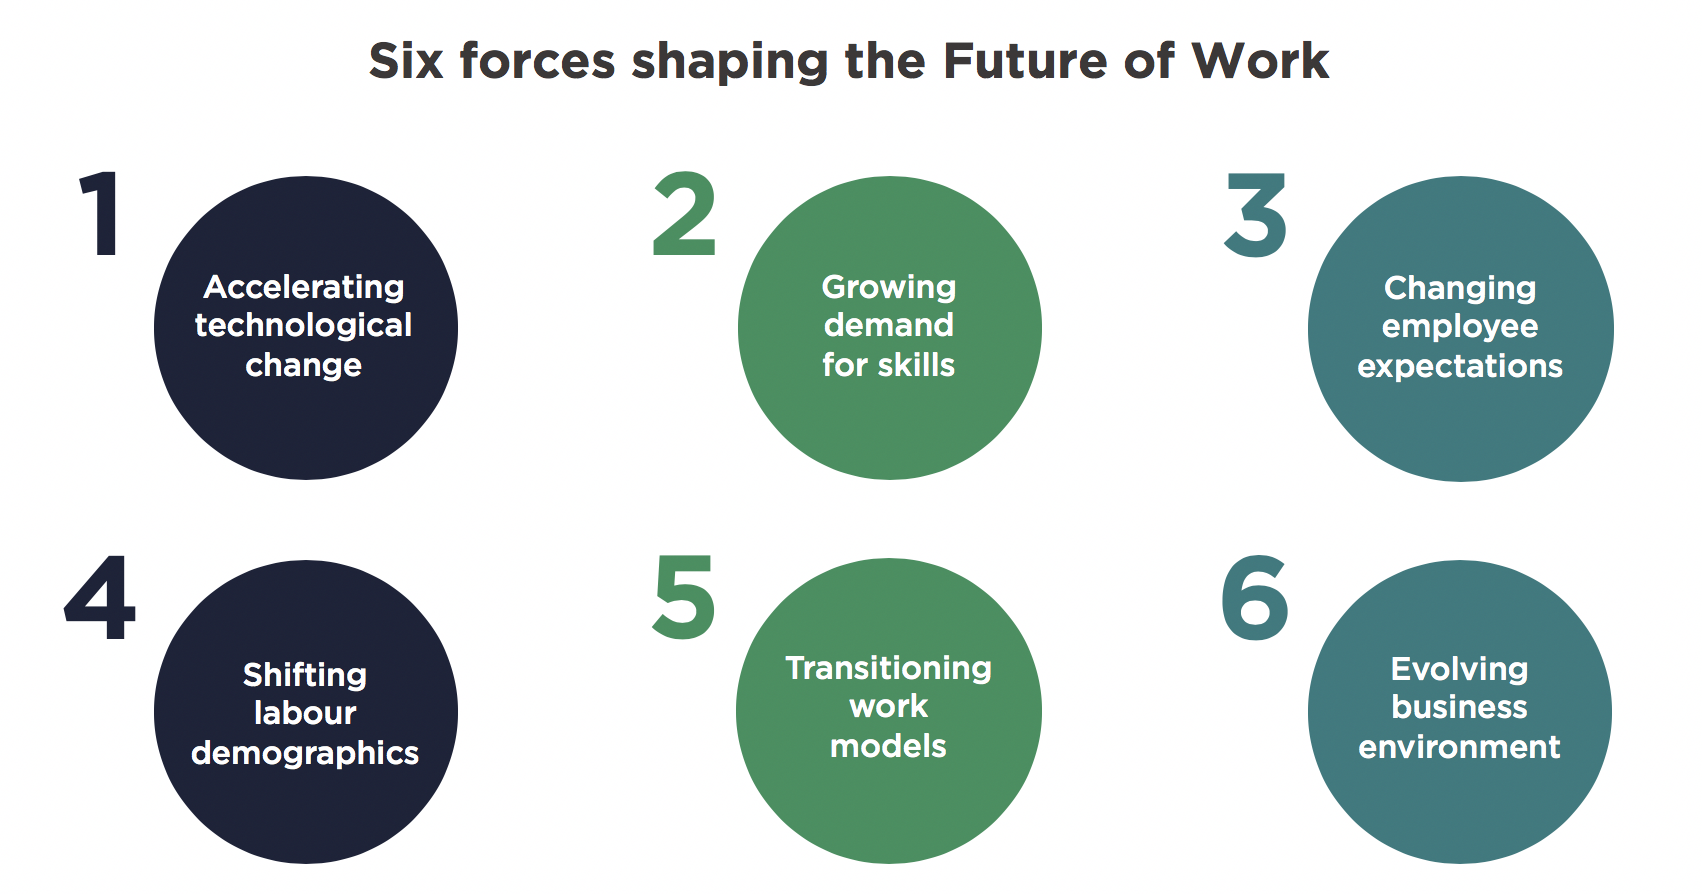 FIG 2:    Six forces shaping the future of work (Source: Created from Fuller et al, Harvard Business Review)